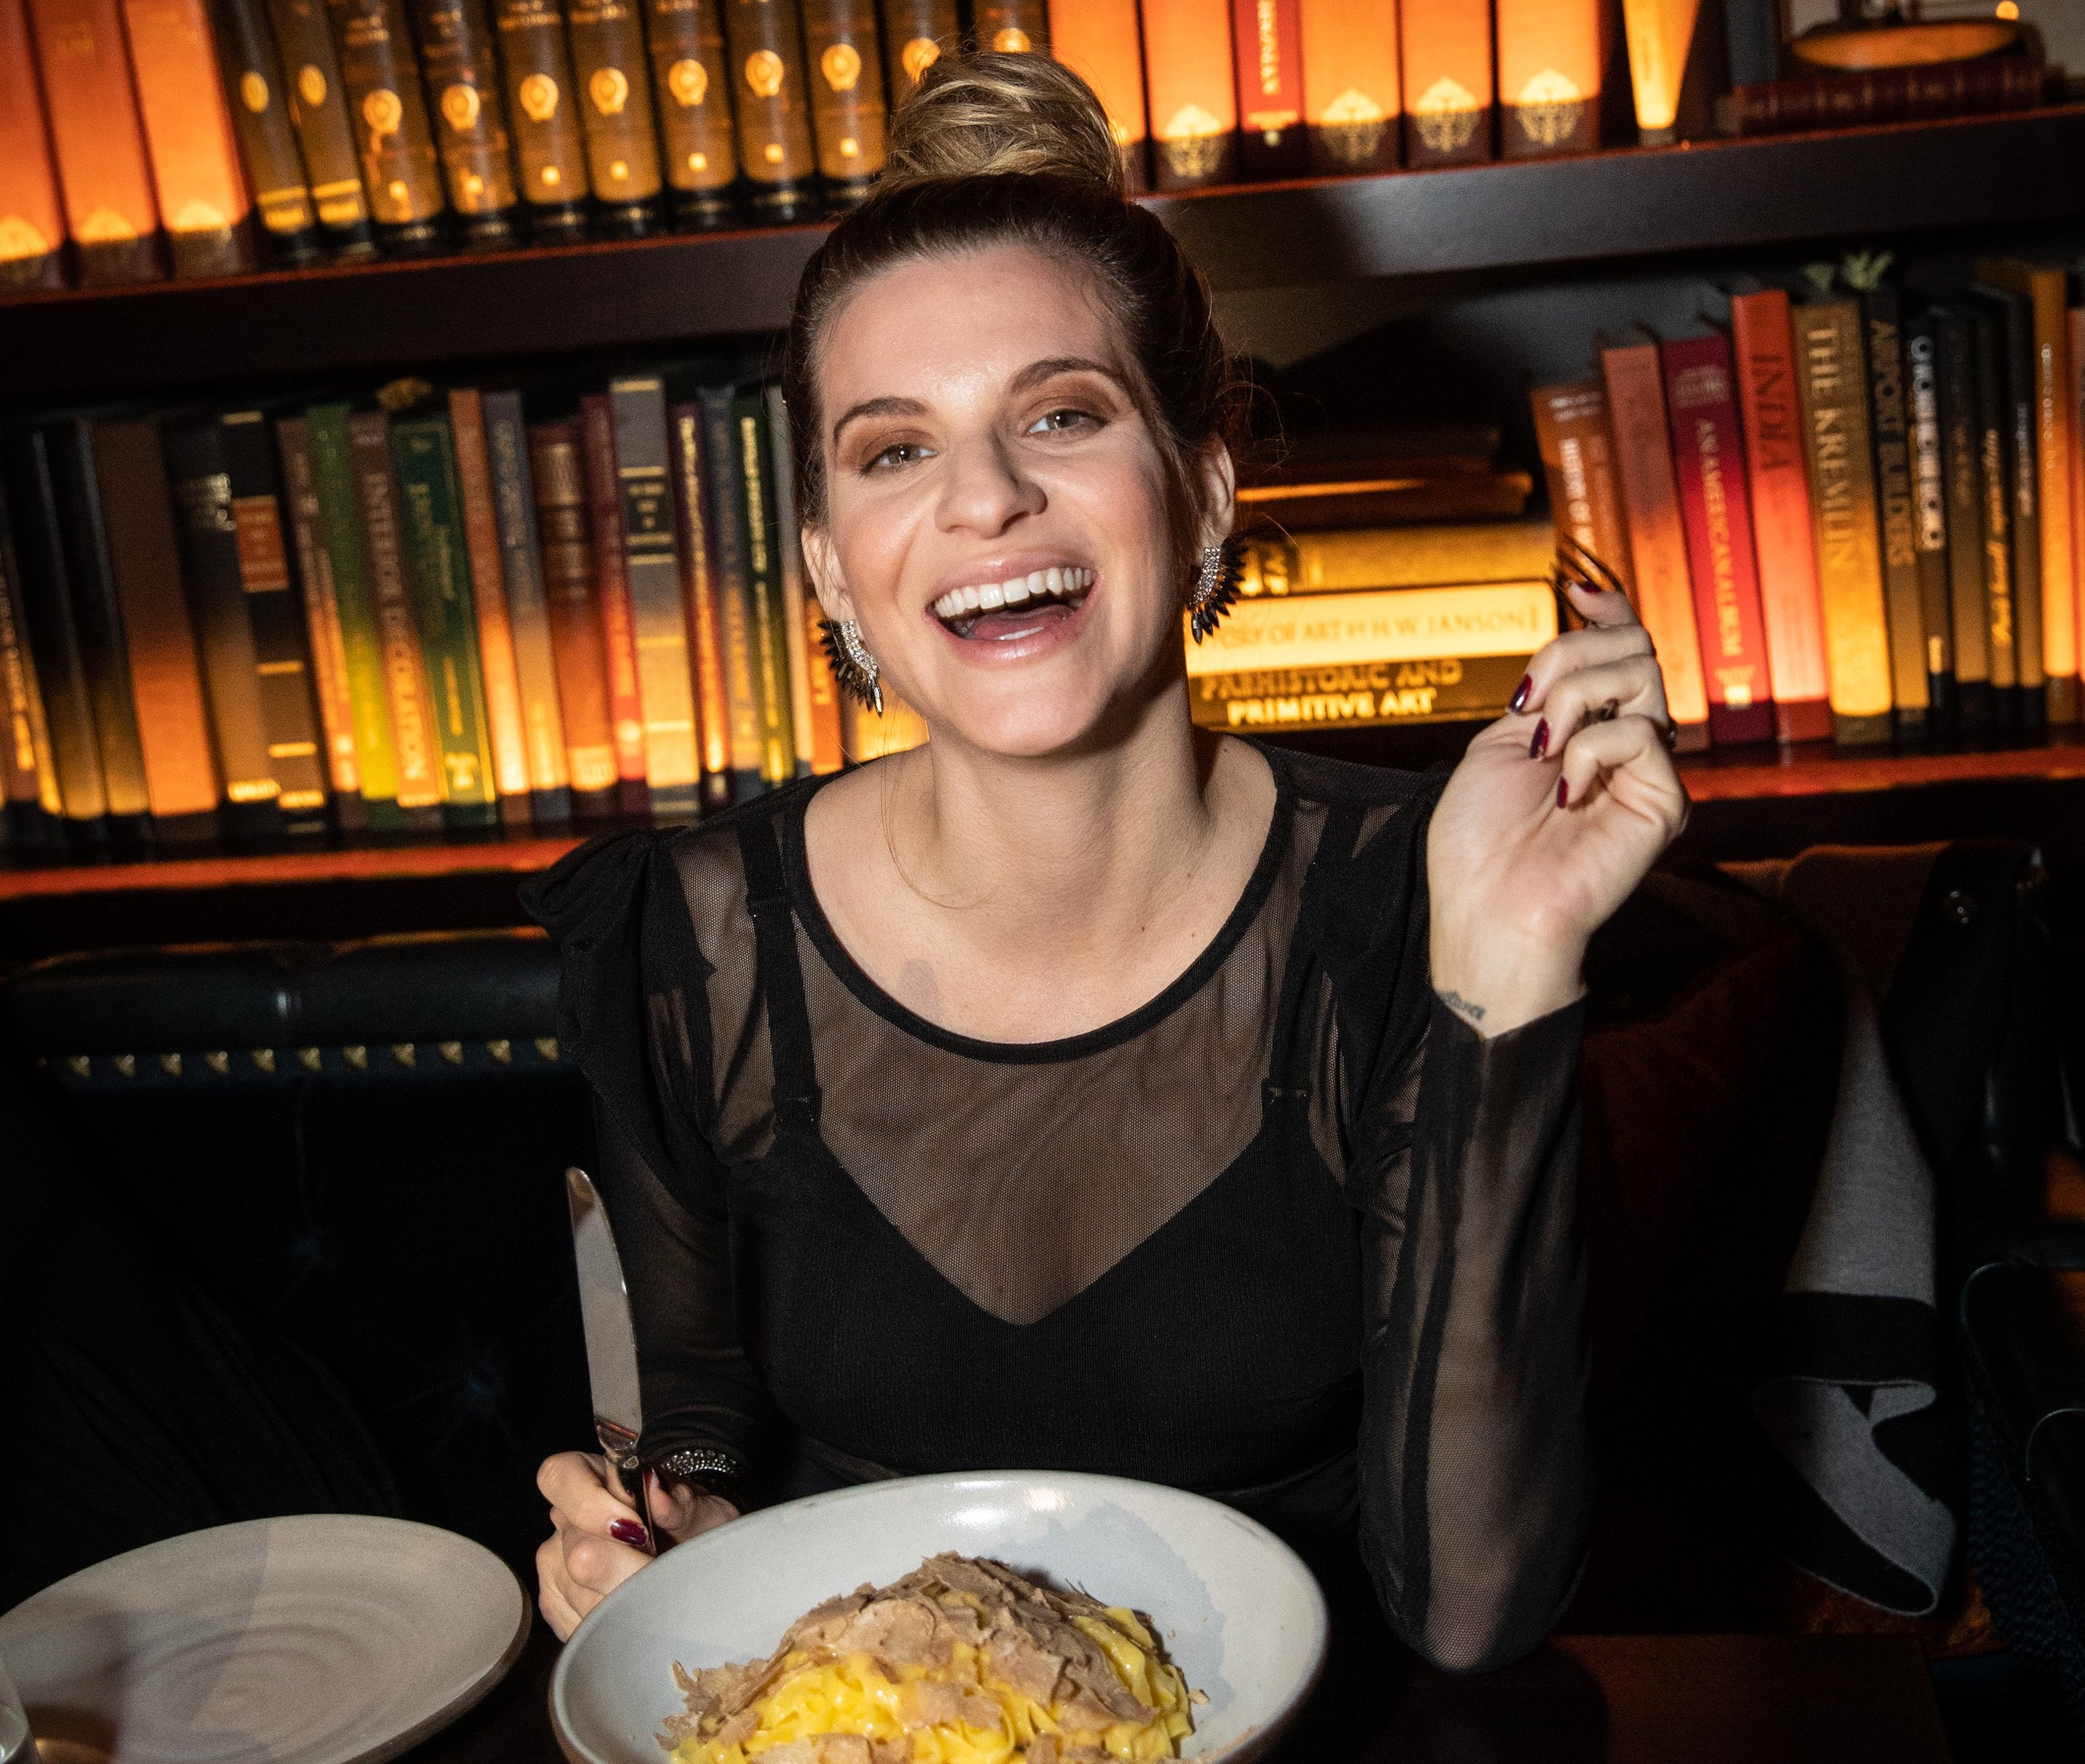 A model dines at a restaurant